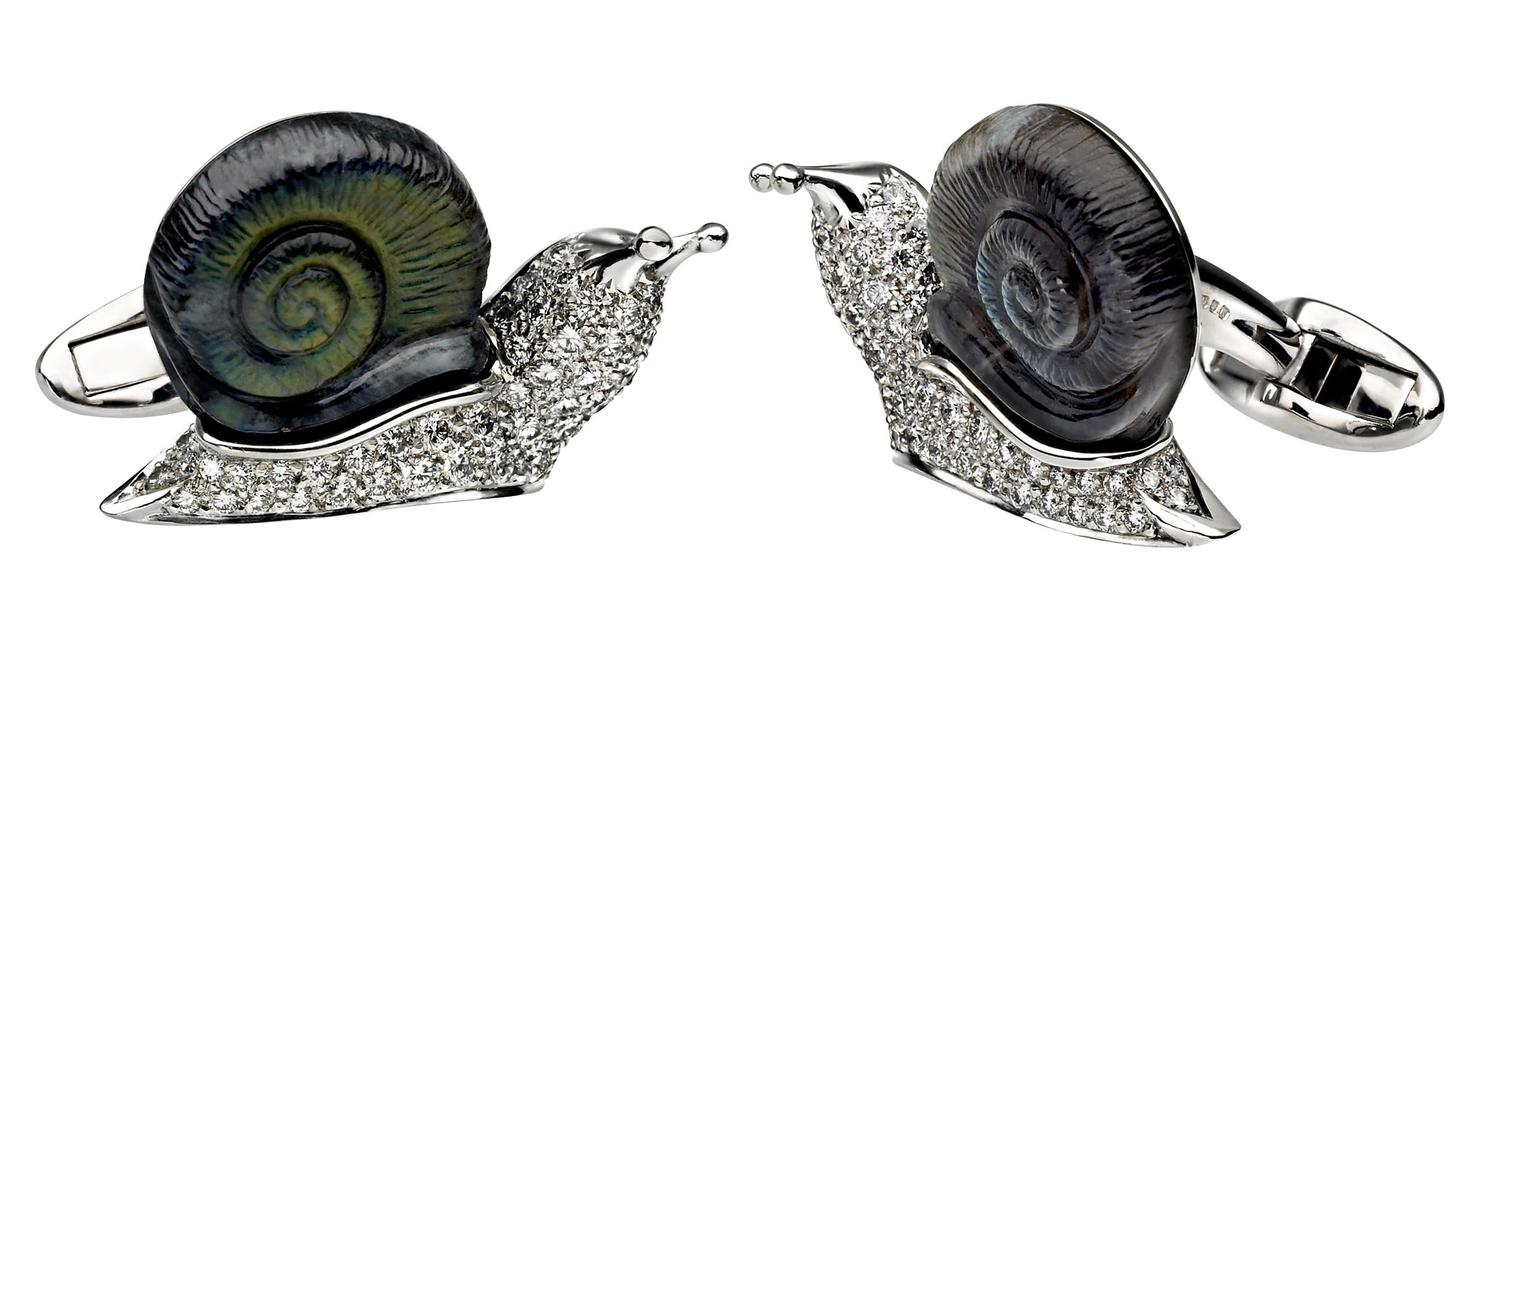 David-Marshall-Snail-Cufflinks-zoom